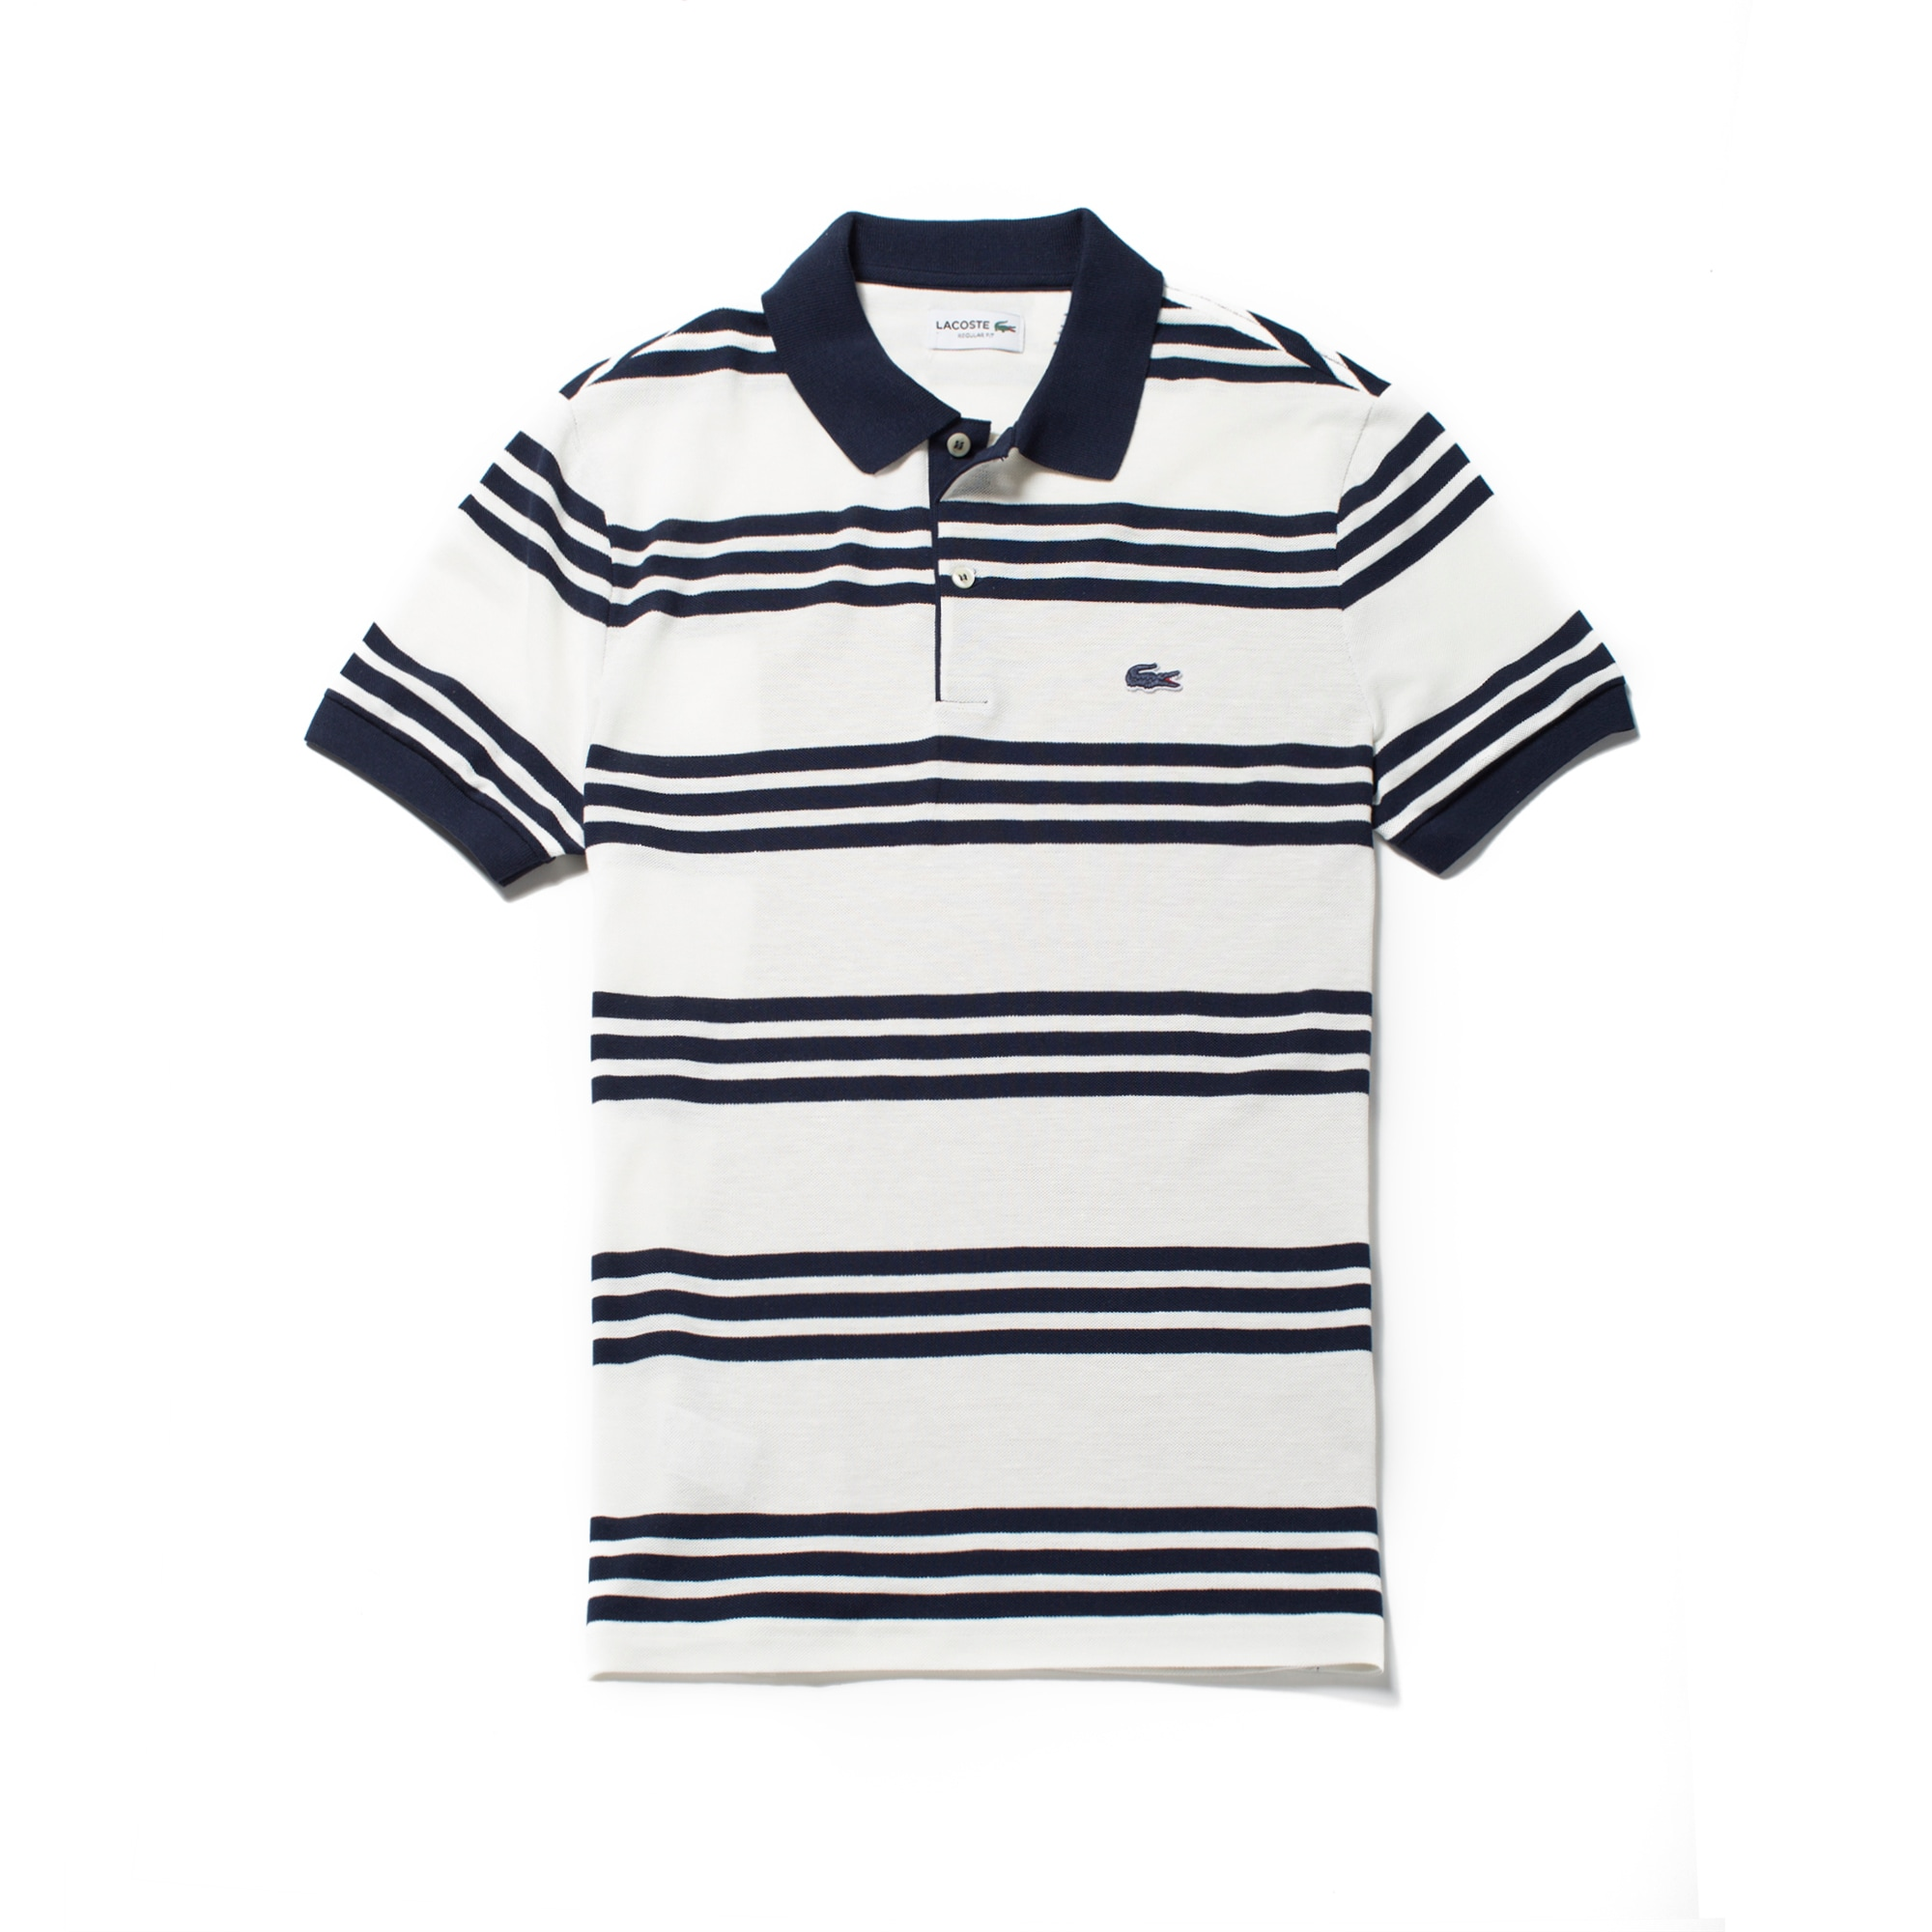 Men's Regular Fit Lacoste Striped Piqué Polo Shirt